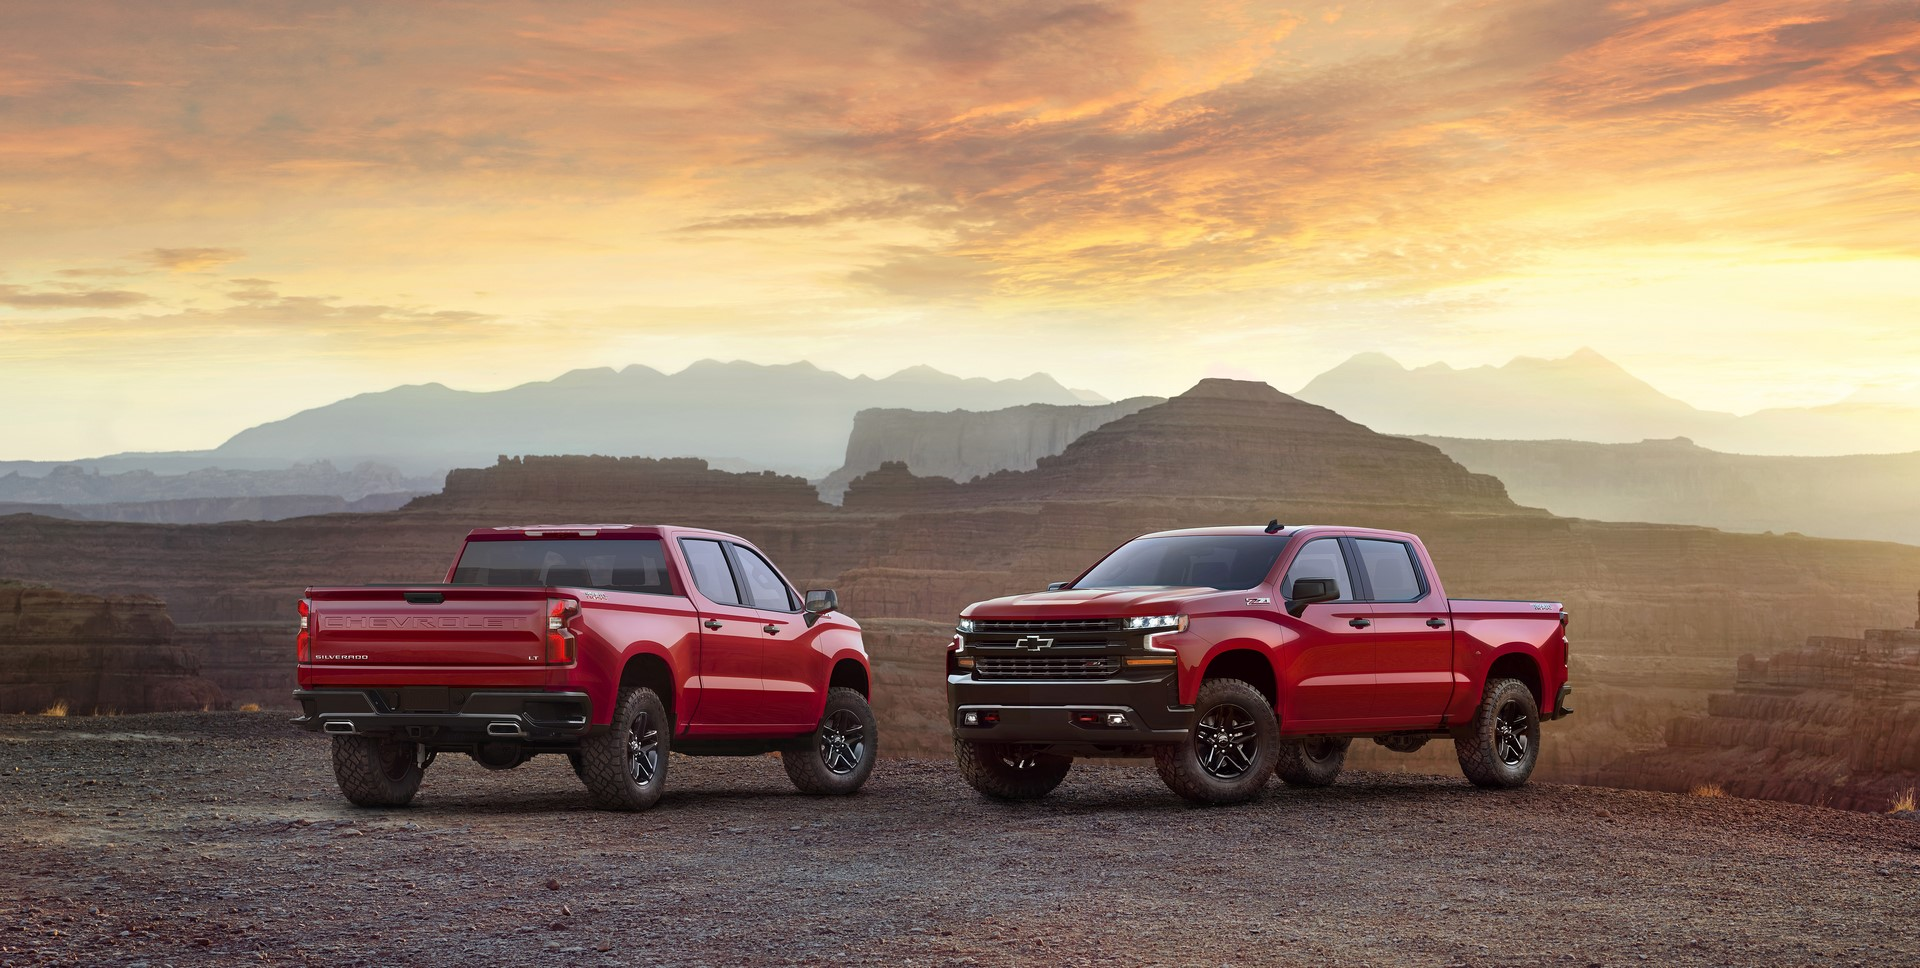 The all-new 2019 LT Trailboss (new trim for 2019) adds off-road equipment to the LT, including a 2-inch suspension lift and the Z71 Off Road Package, including locking rear differential, skid plates, Rancho shocks, 18-inch wheels and Goodyear Duratrac off-road tires.